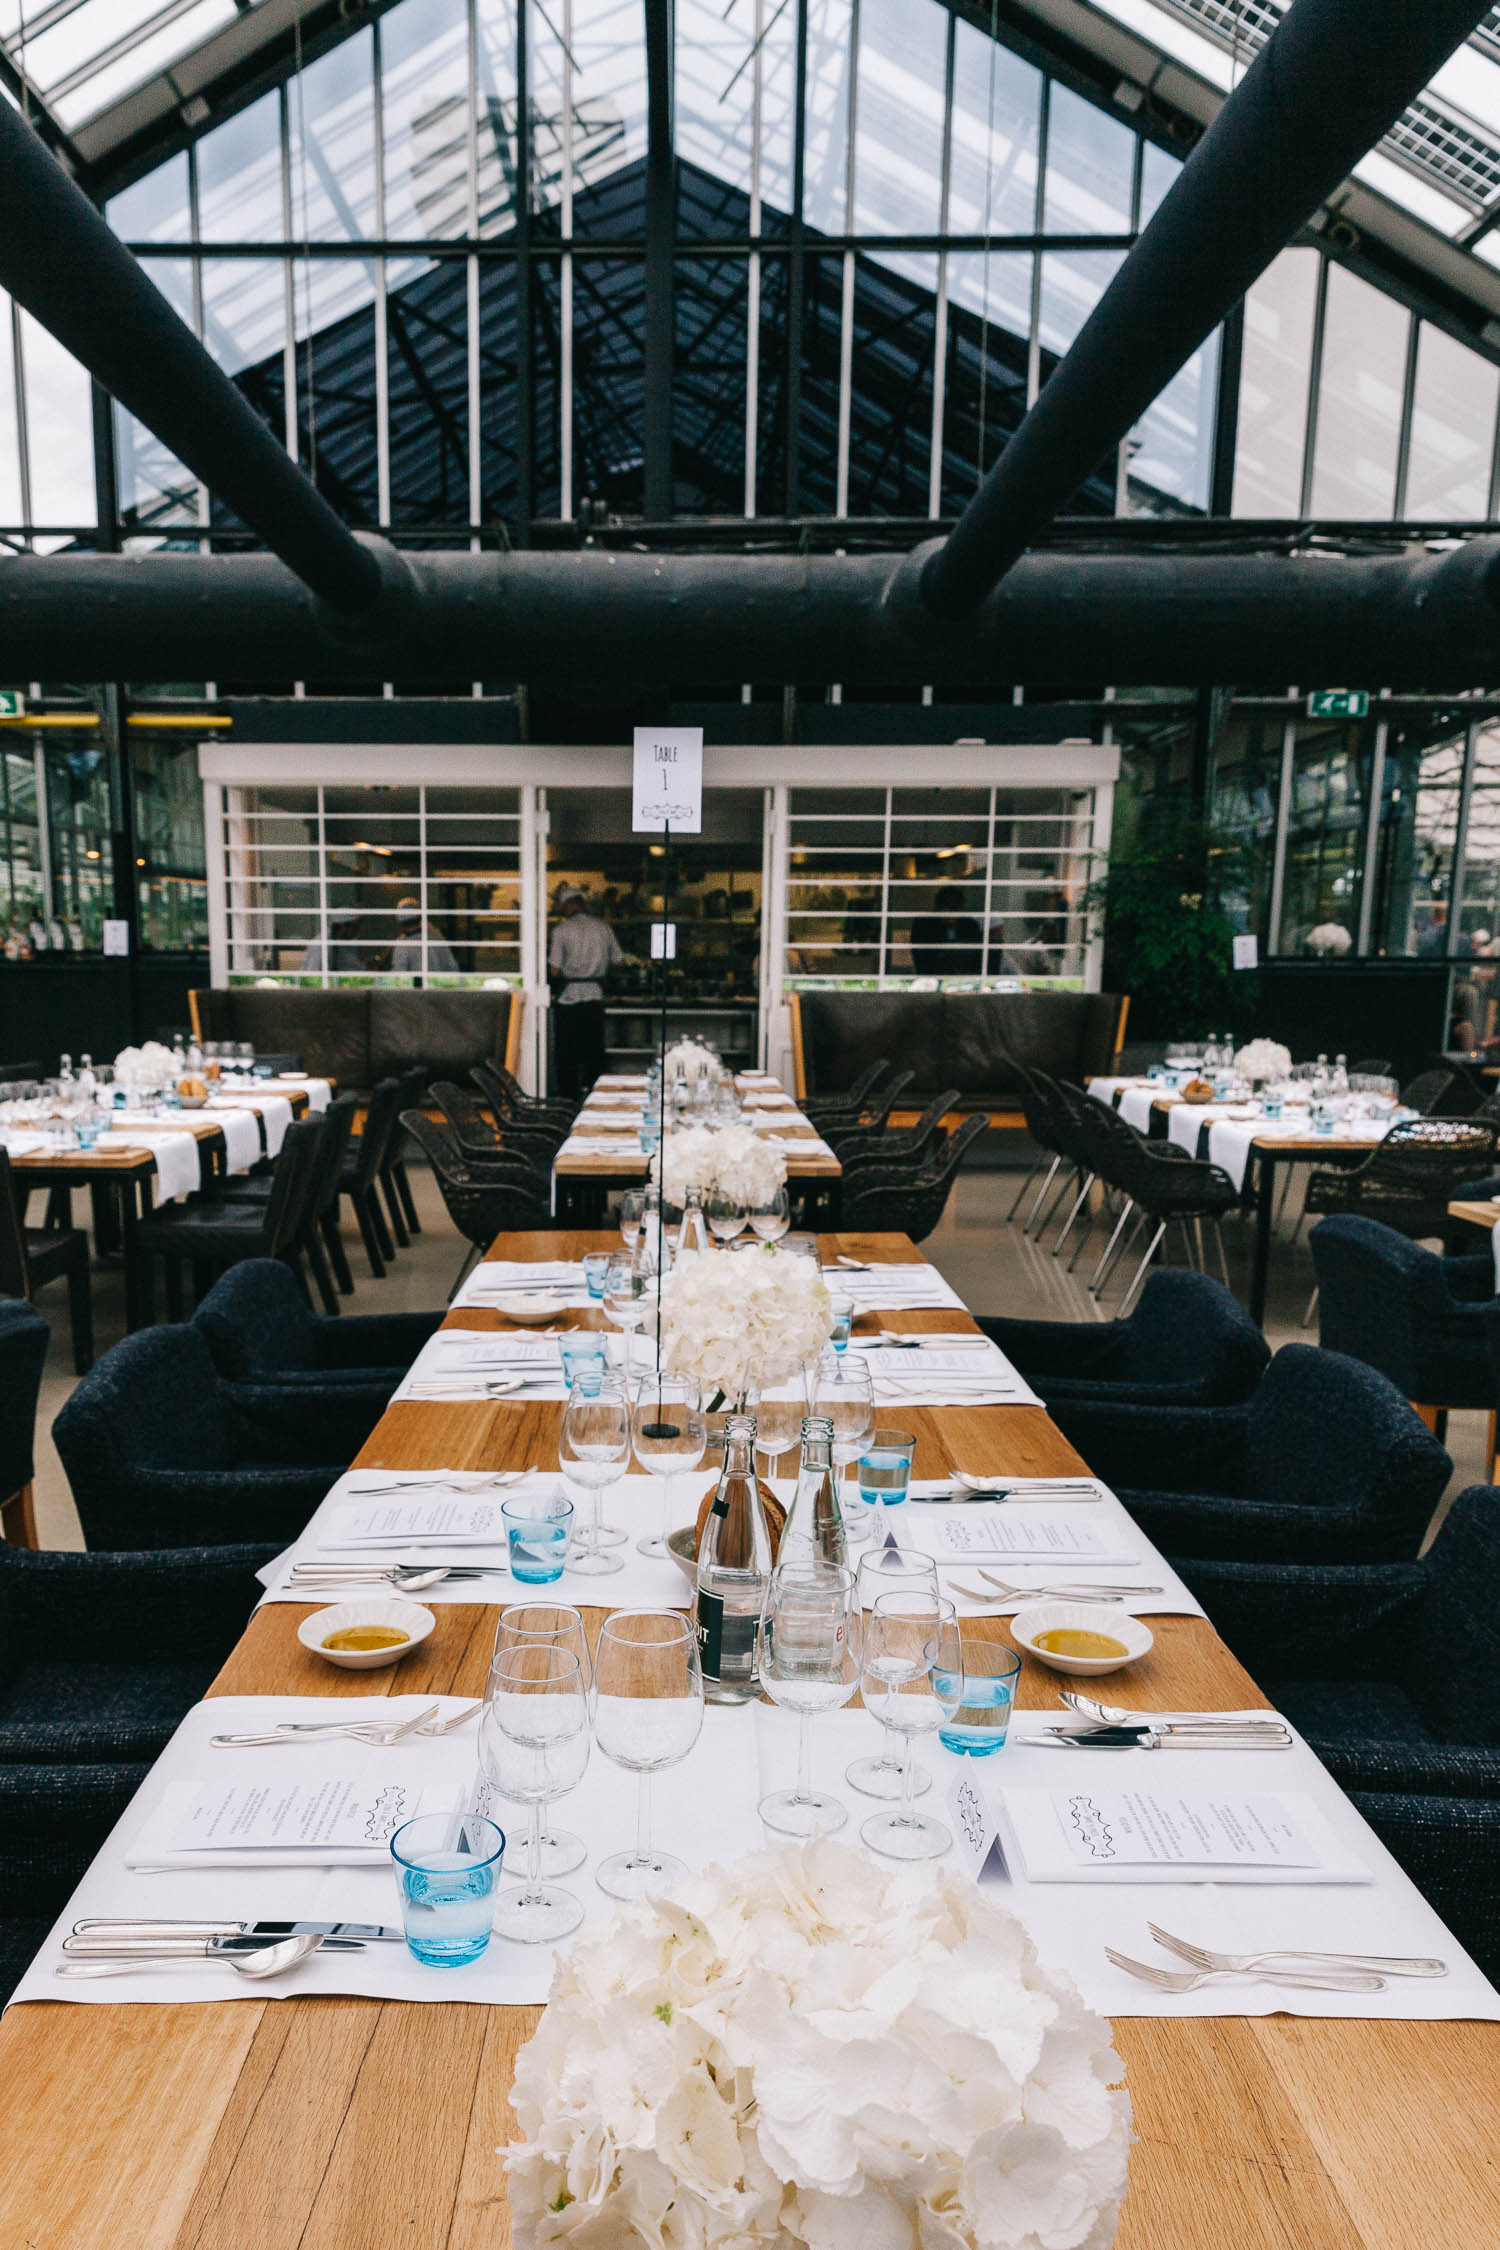 Urban-green-greenhouse-wedding-Ilina-and-james-restaurant-De-Kas-Amsterdam-by-On-a-hazy-morning-94.jpg